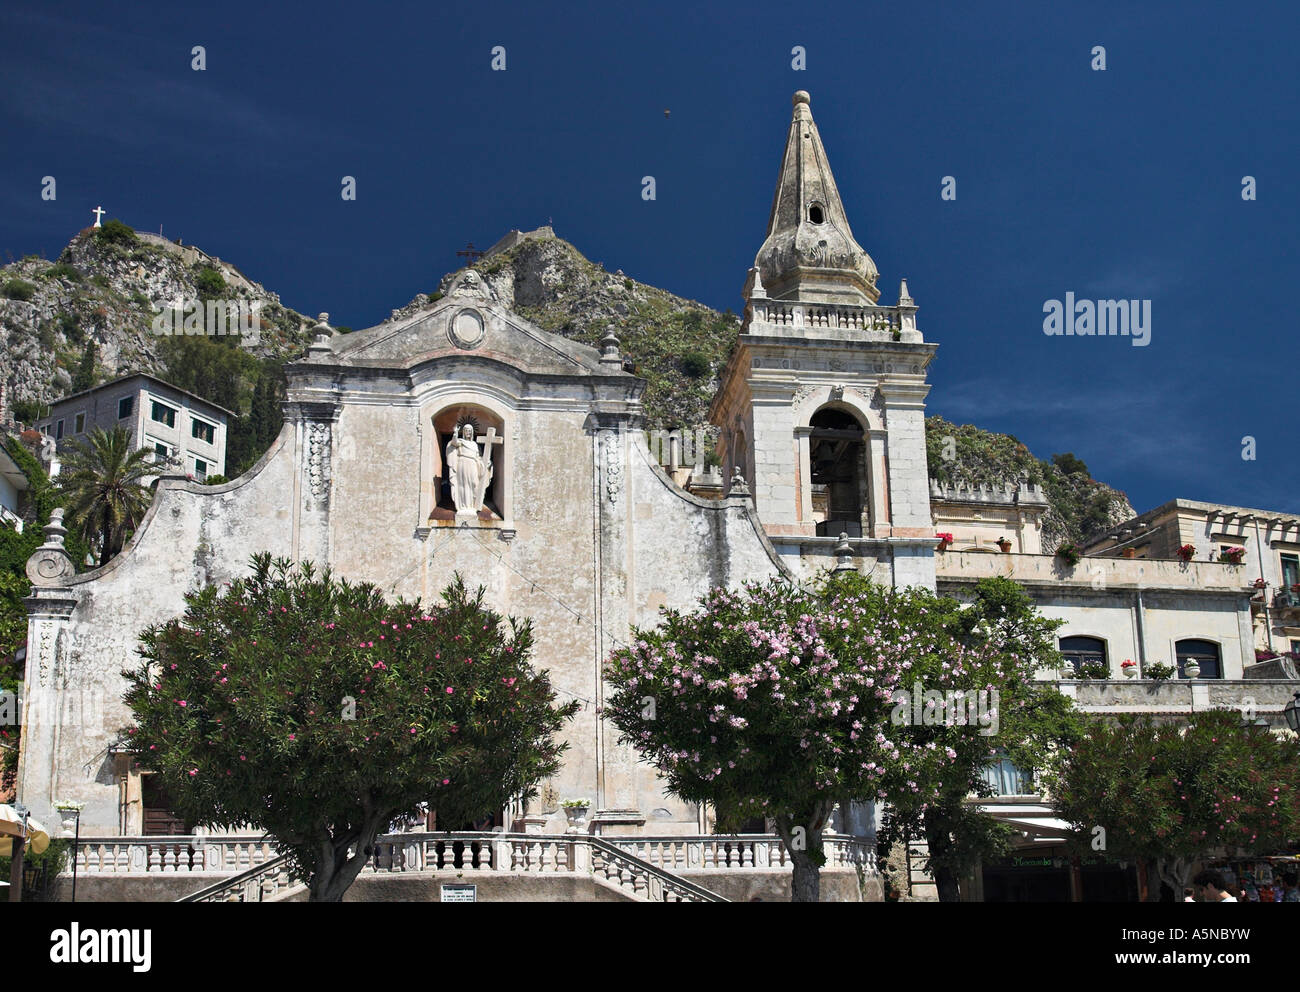 Wedding Location: he front facade of the 17th century church of San Giuseppe on the main square is a favorite wedding - Stock Image